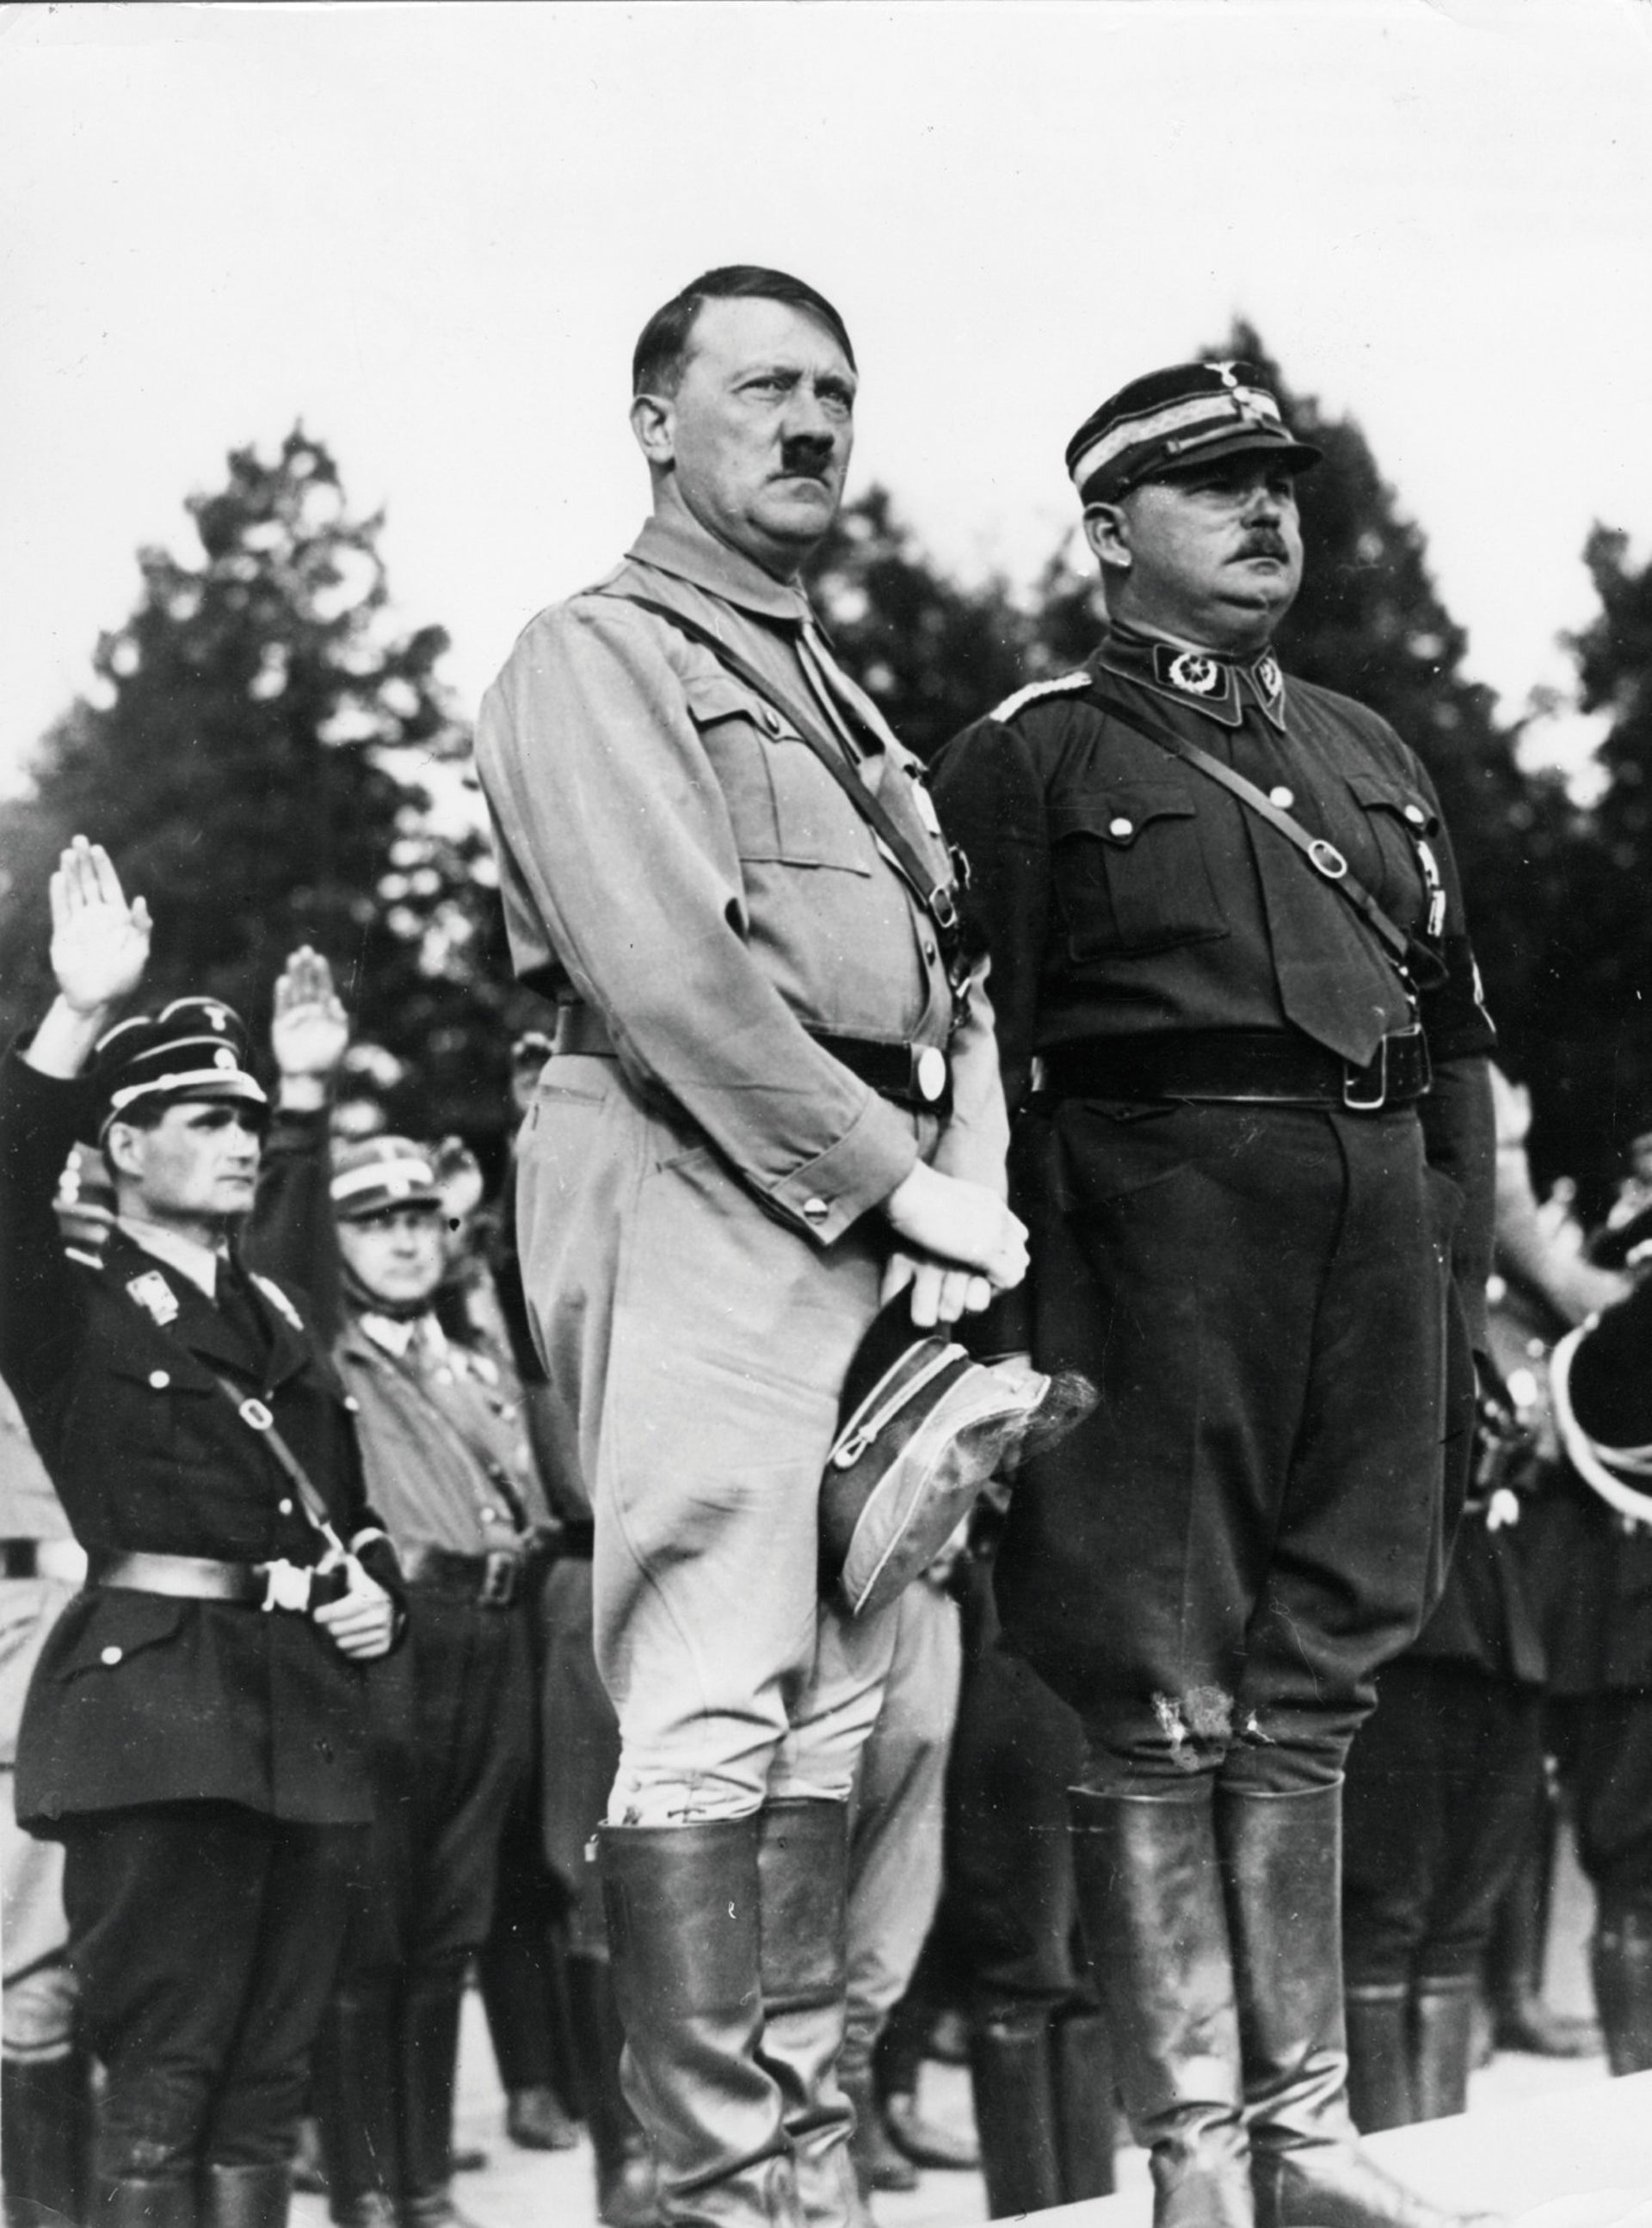 Hitler and Roehm, in the year before the fuehrer purged the SA head and his followers.